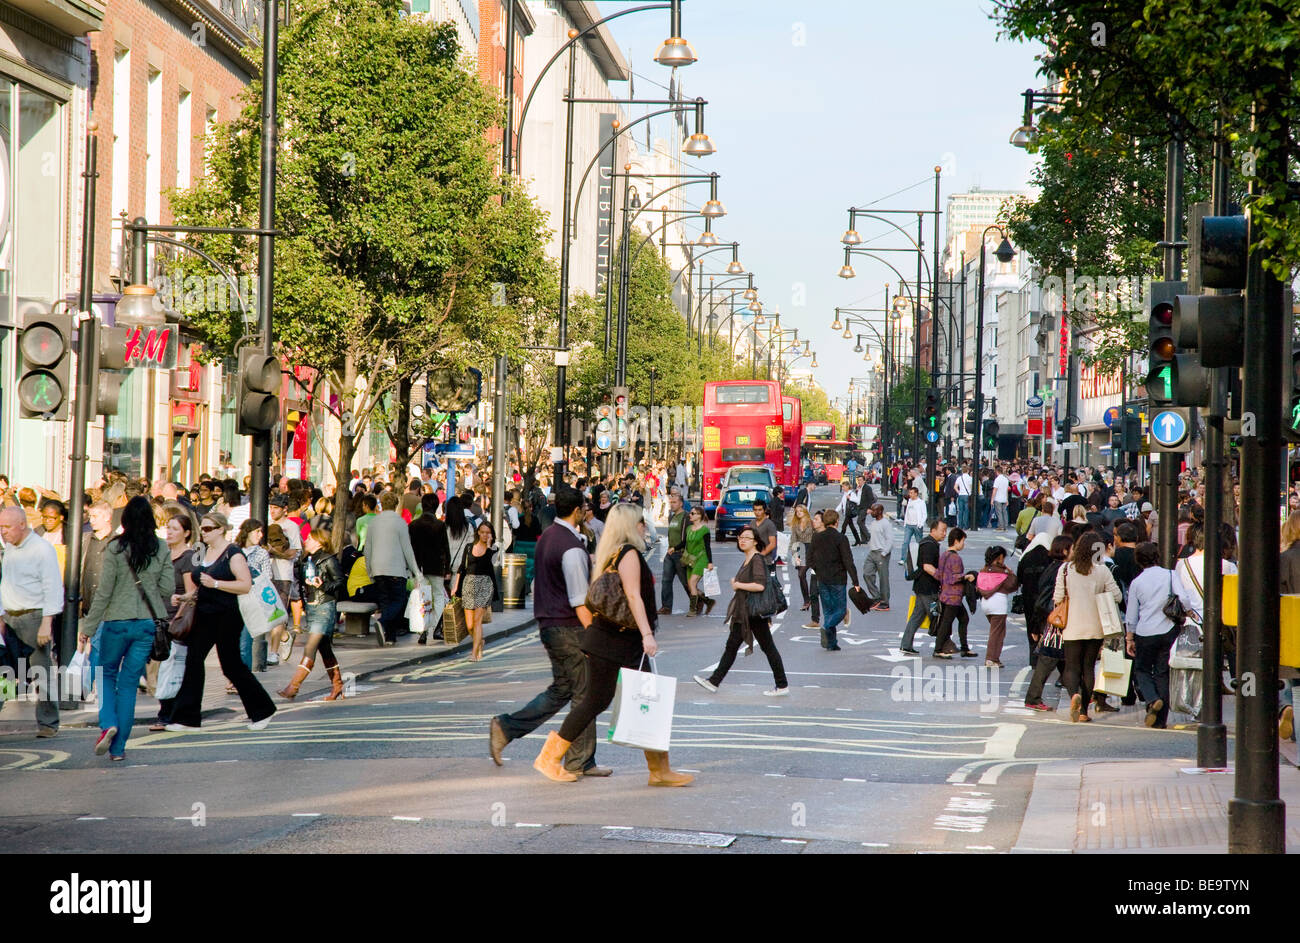 Busy Oxford Street in London England - Stock Image